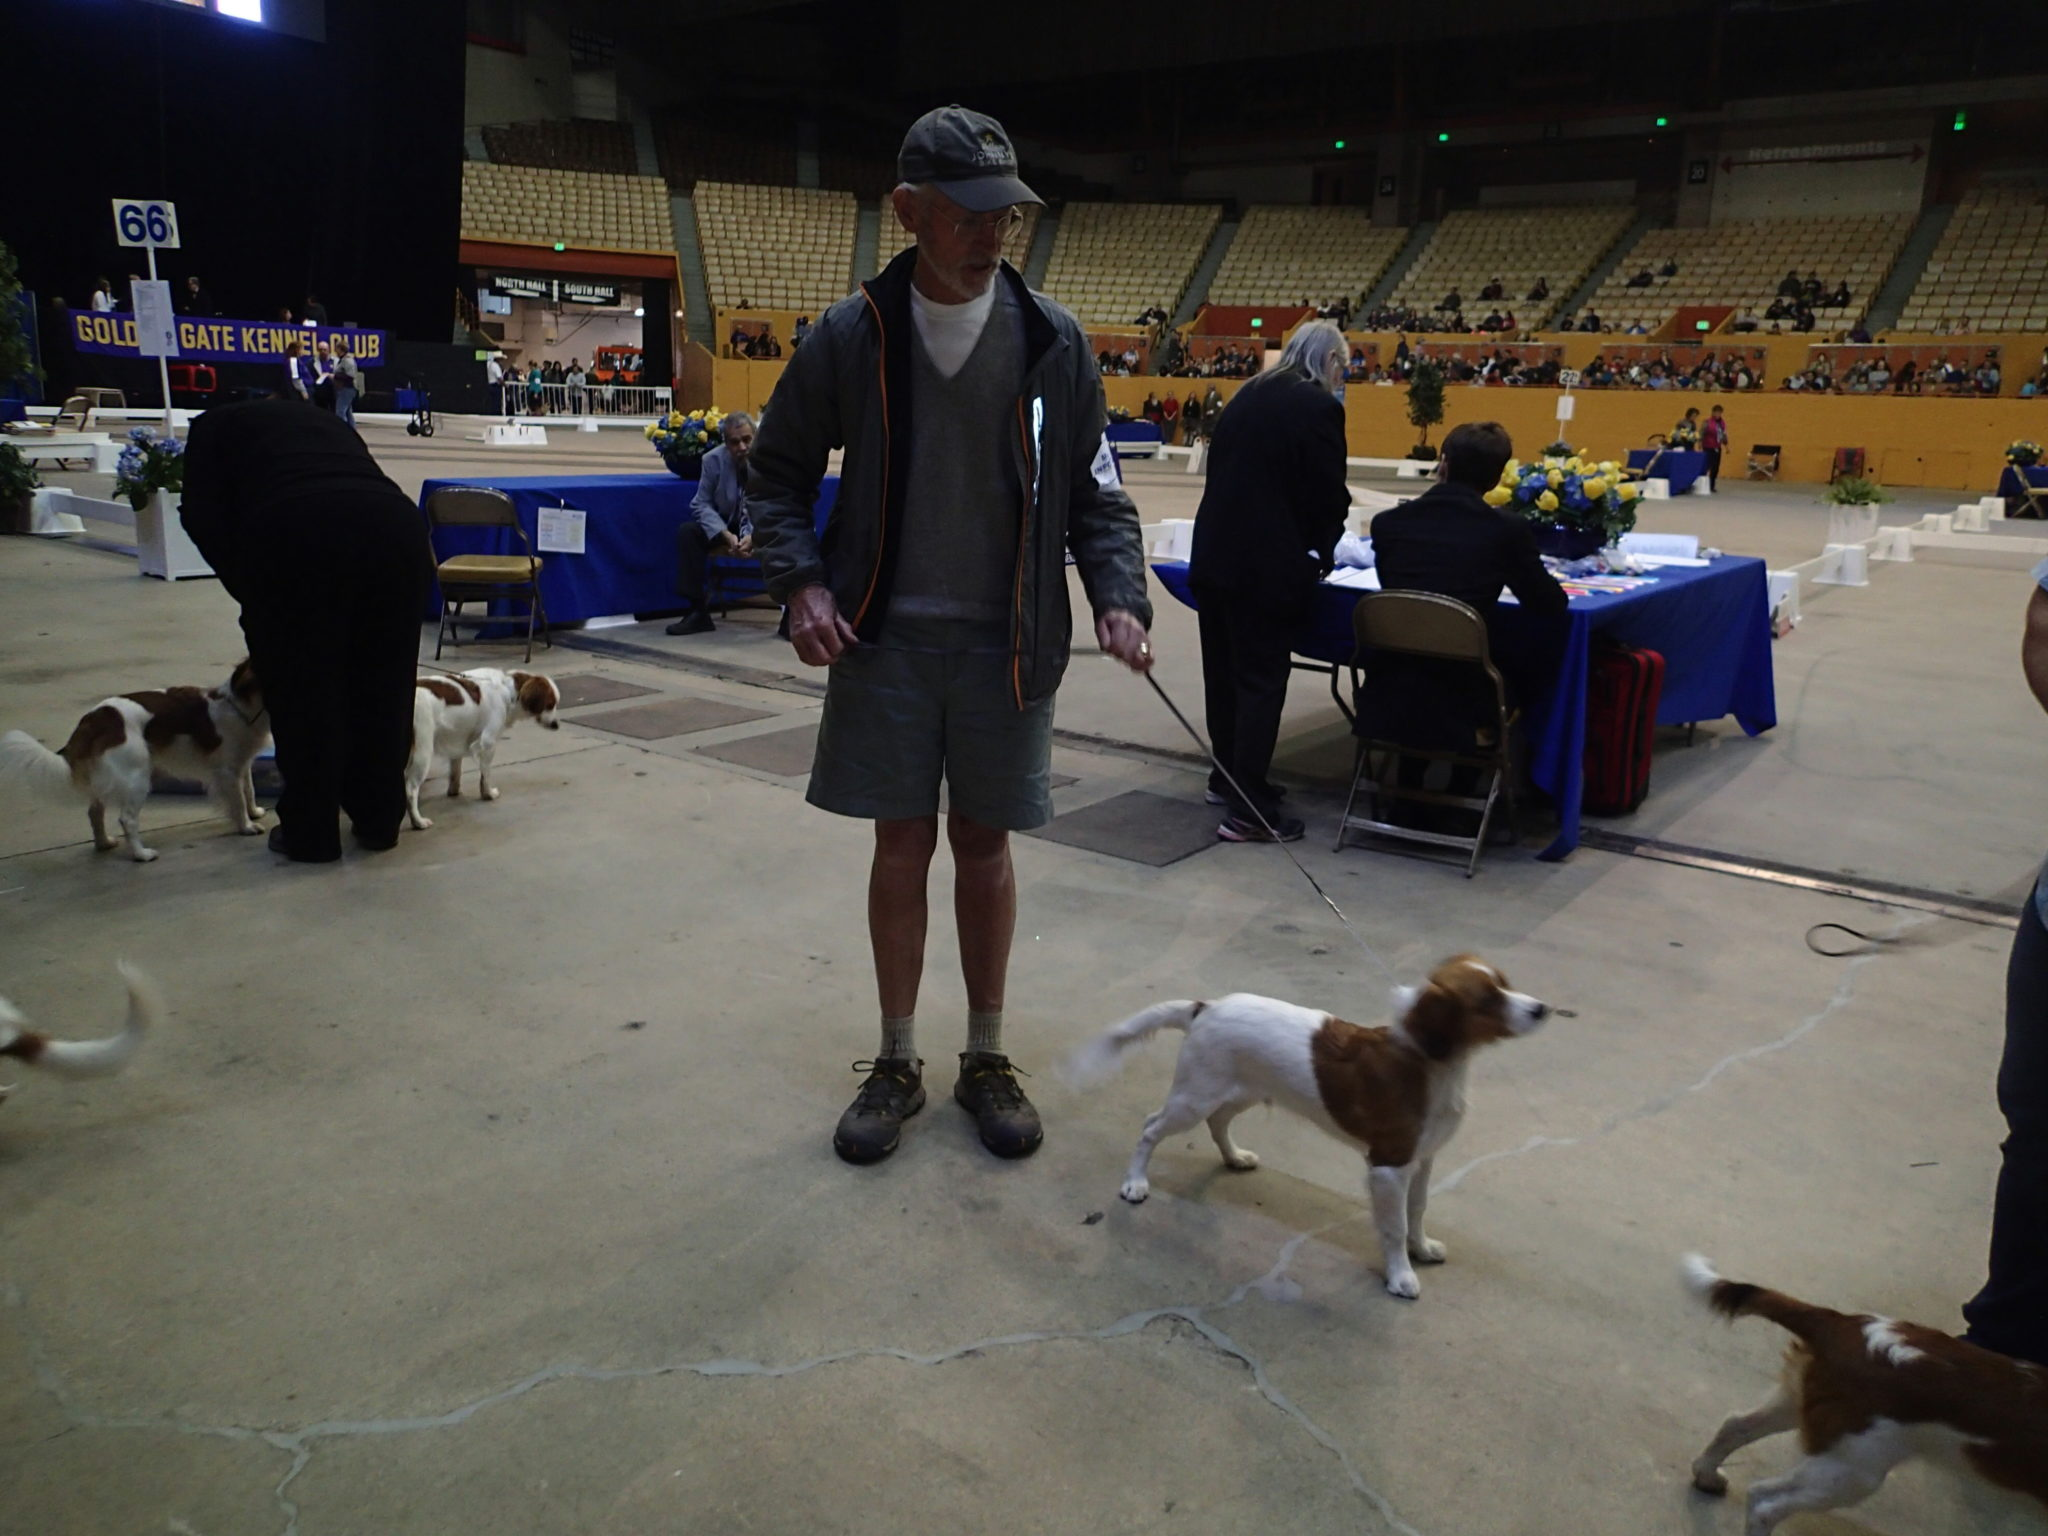 kooiker Zane at the dog show